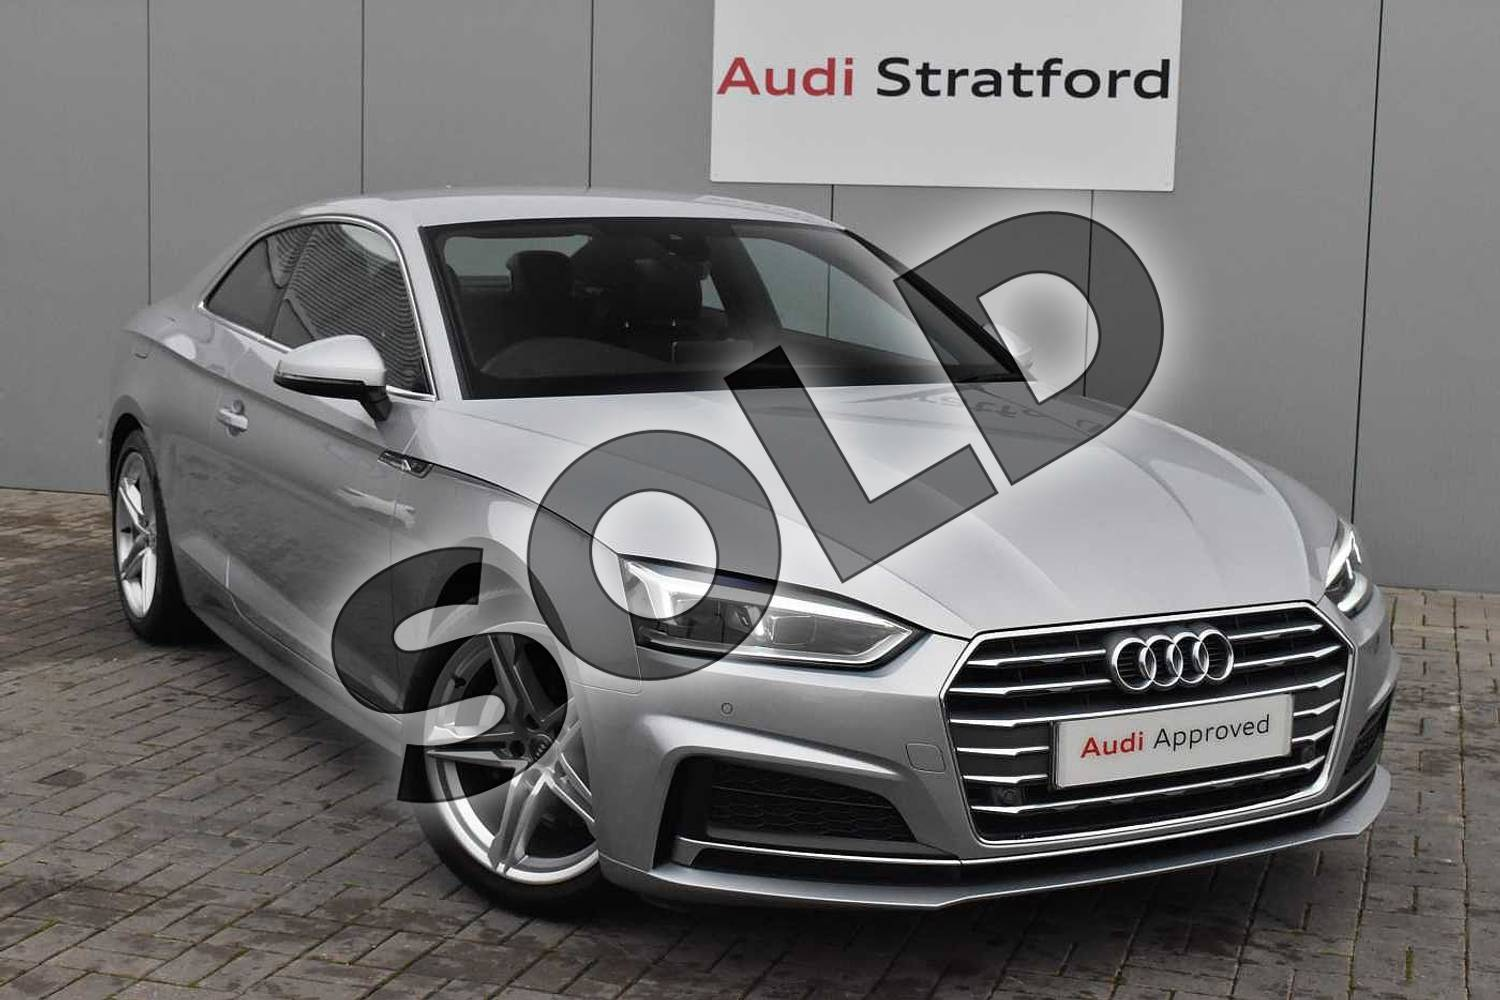 2018 Audi A5 Diesel Coupe Diesel 2.0 TDI S Line 2dr S Tronic in Floret Silver Metallic at Coventry Audi